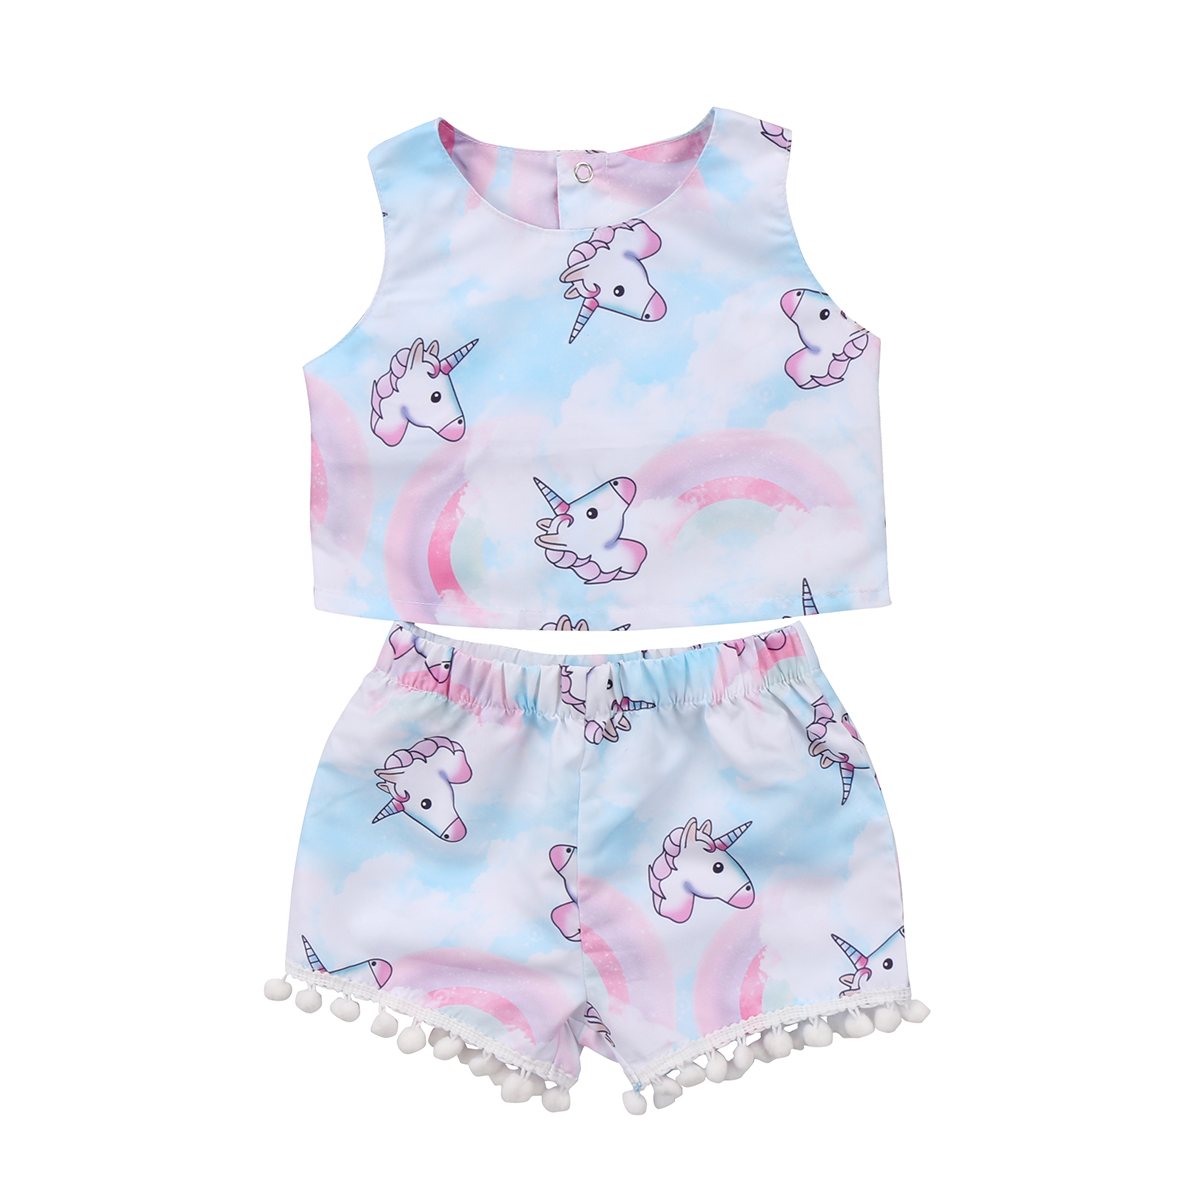 Toddler Baby Girl Kids Dress Tops T-shirt Shorts Pants Outfit Set Clothes Summer